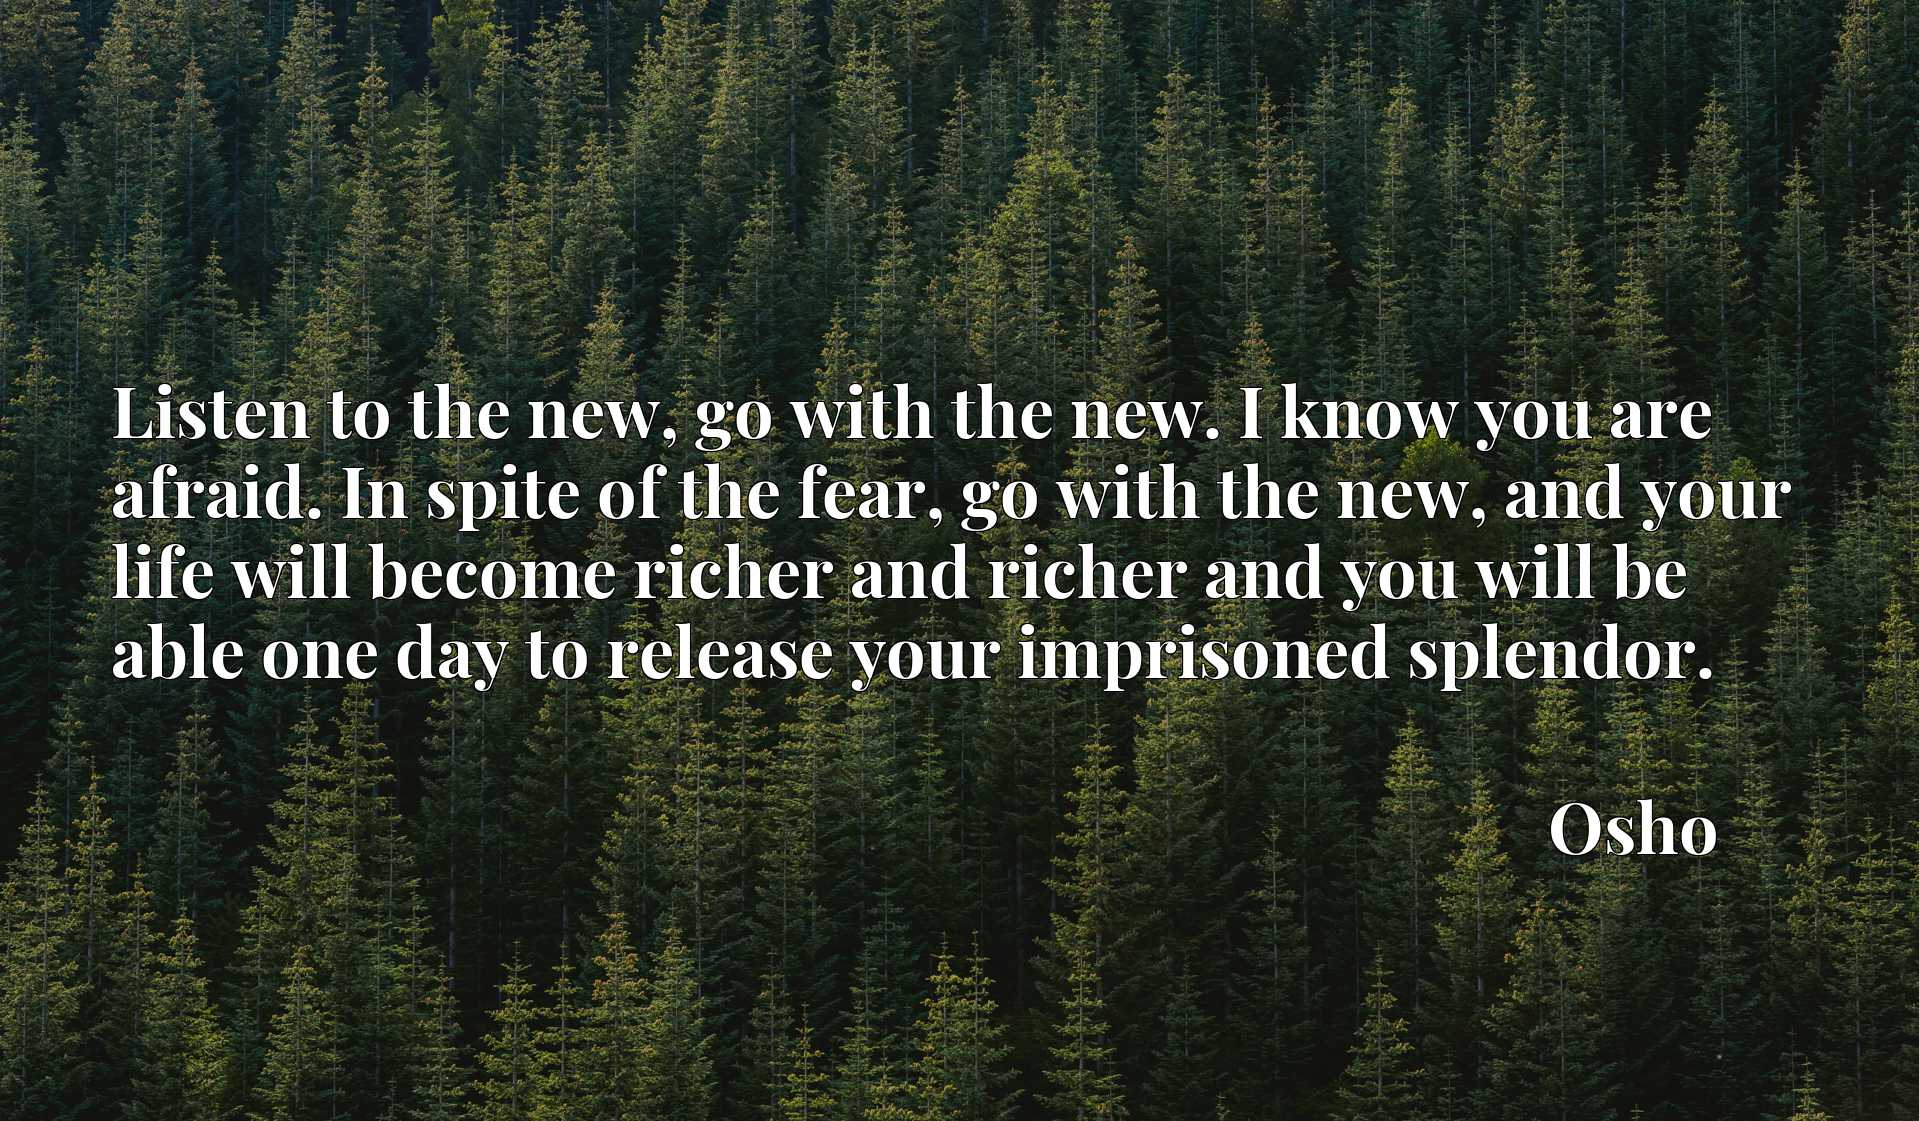 Listen to the new, go with the new. I know you are afraid. In spite of the fear, go with the new, and your life will become richer and richer and you will be able one day to release your imprisoned splendor.